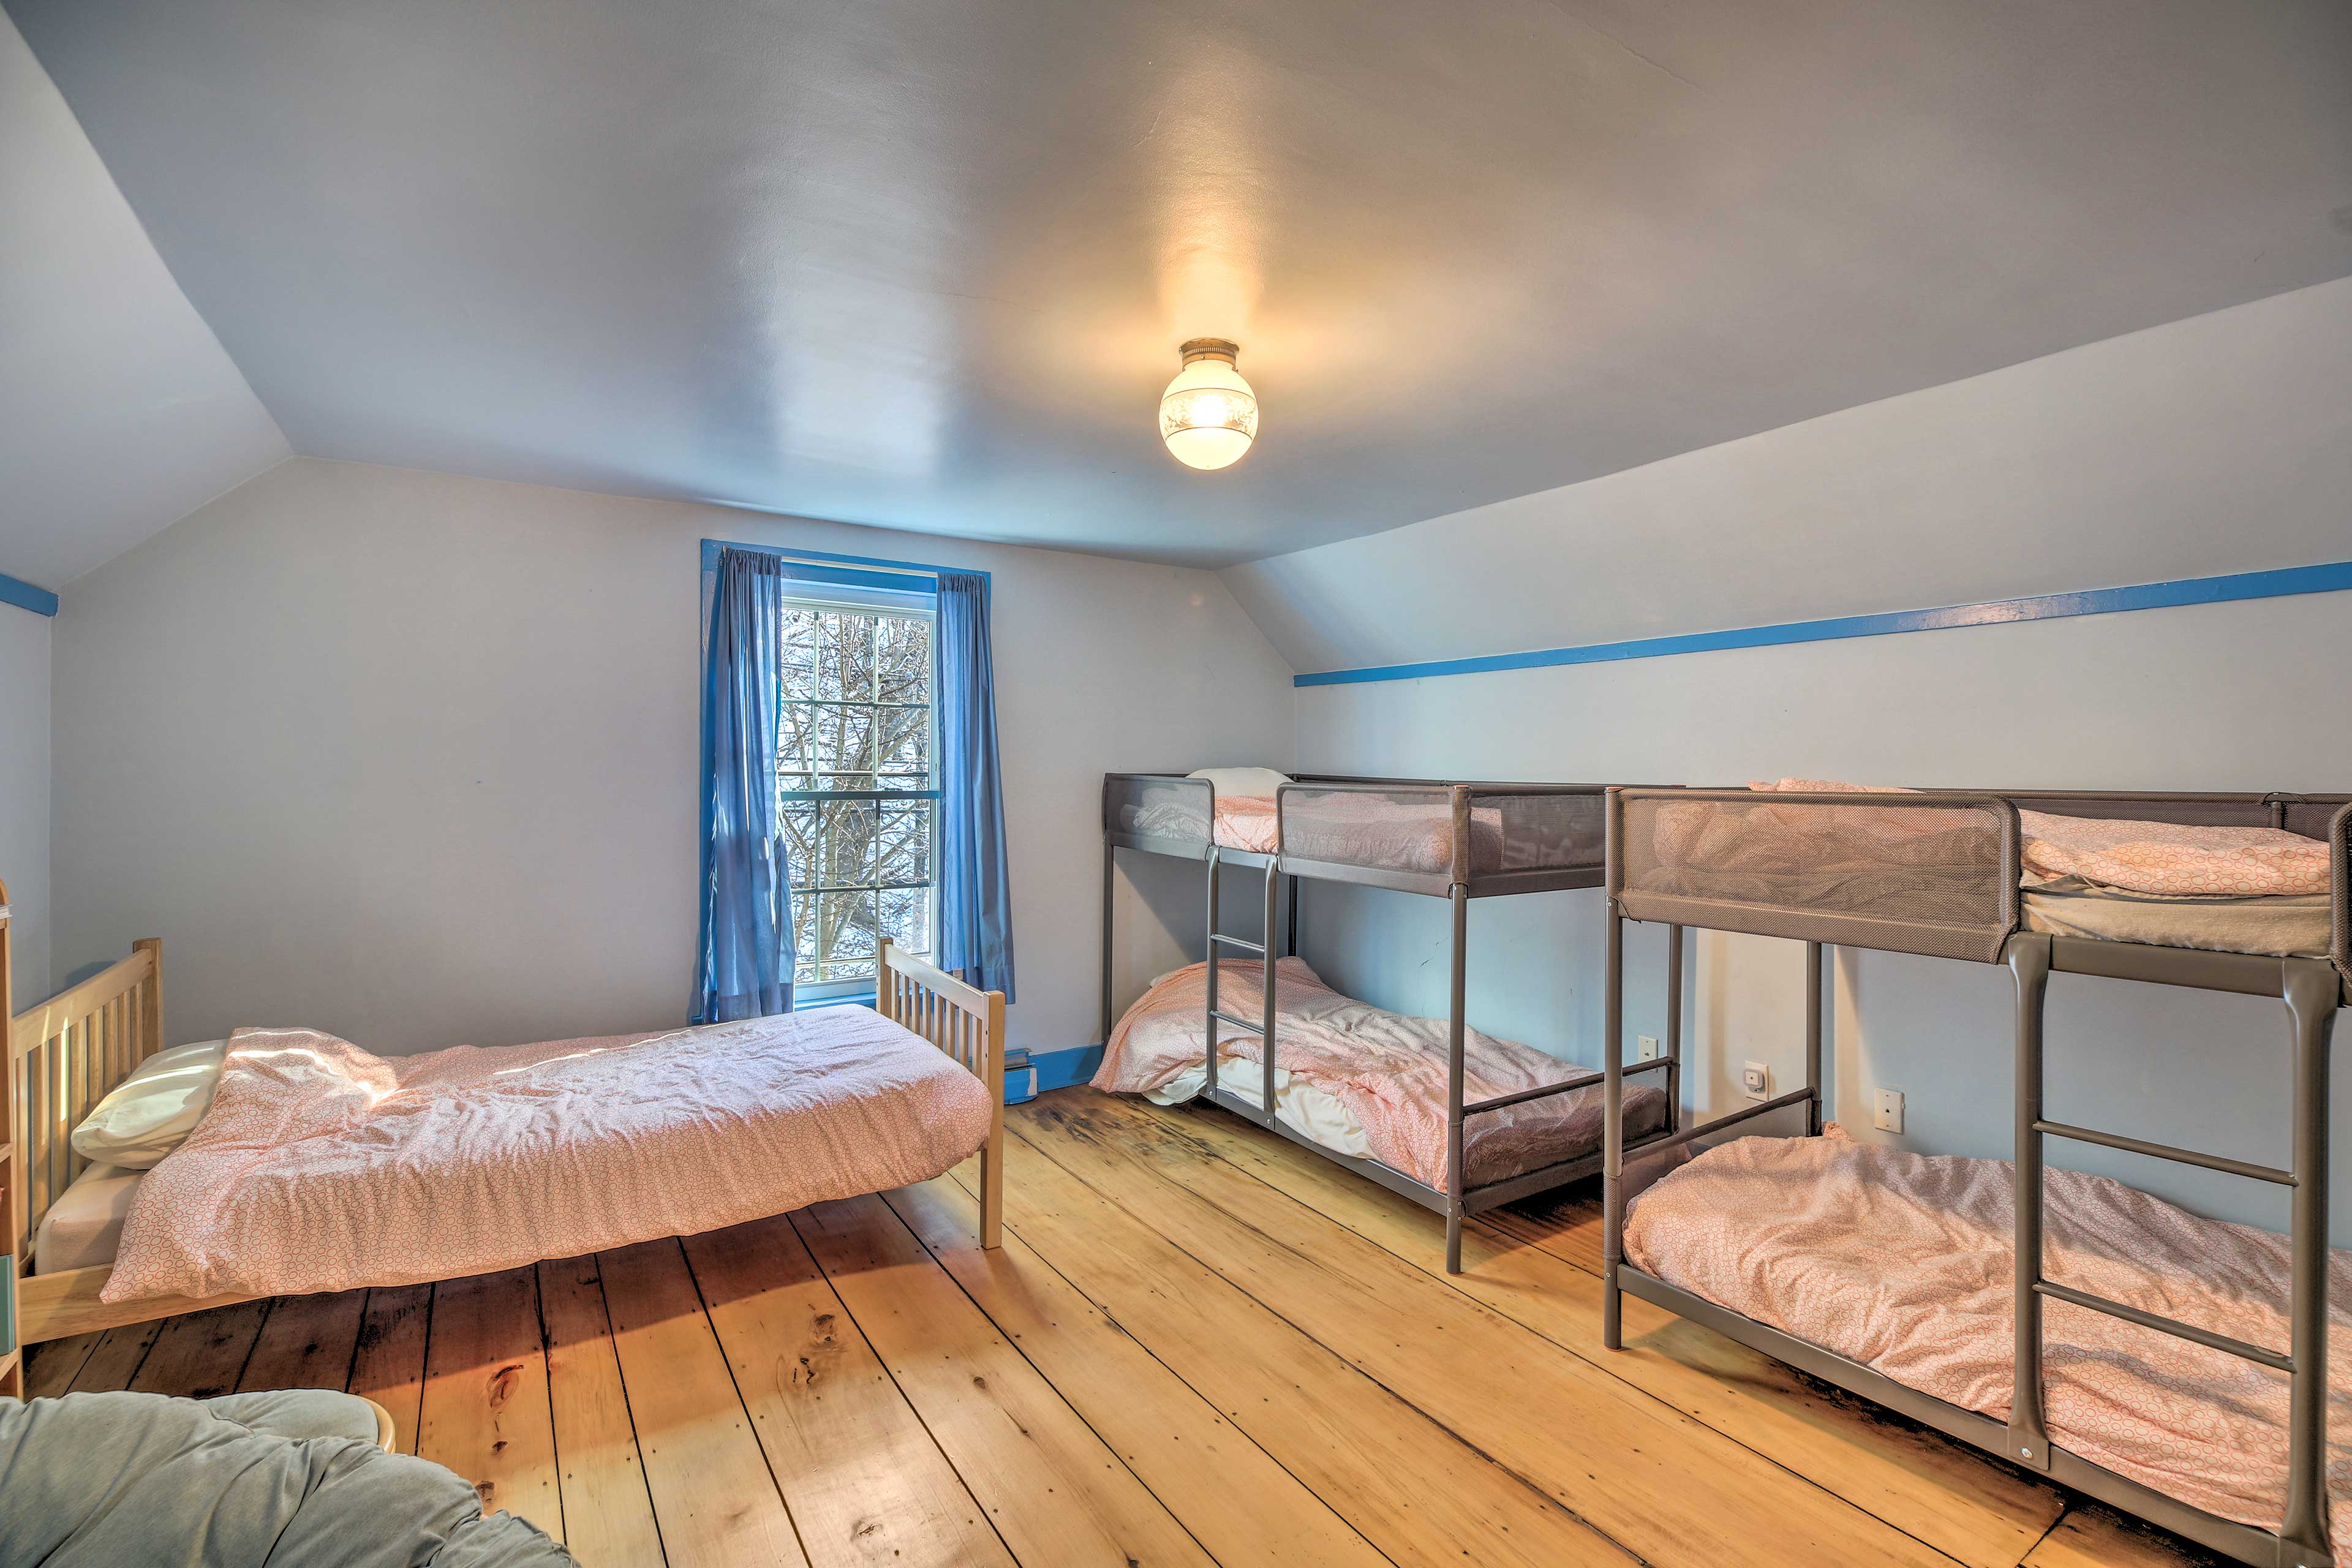 The kid's room has 2 twin bunk beds and a separate twin bed.